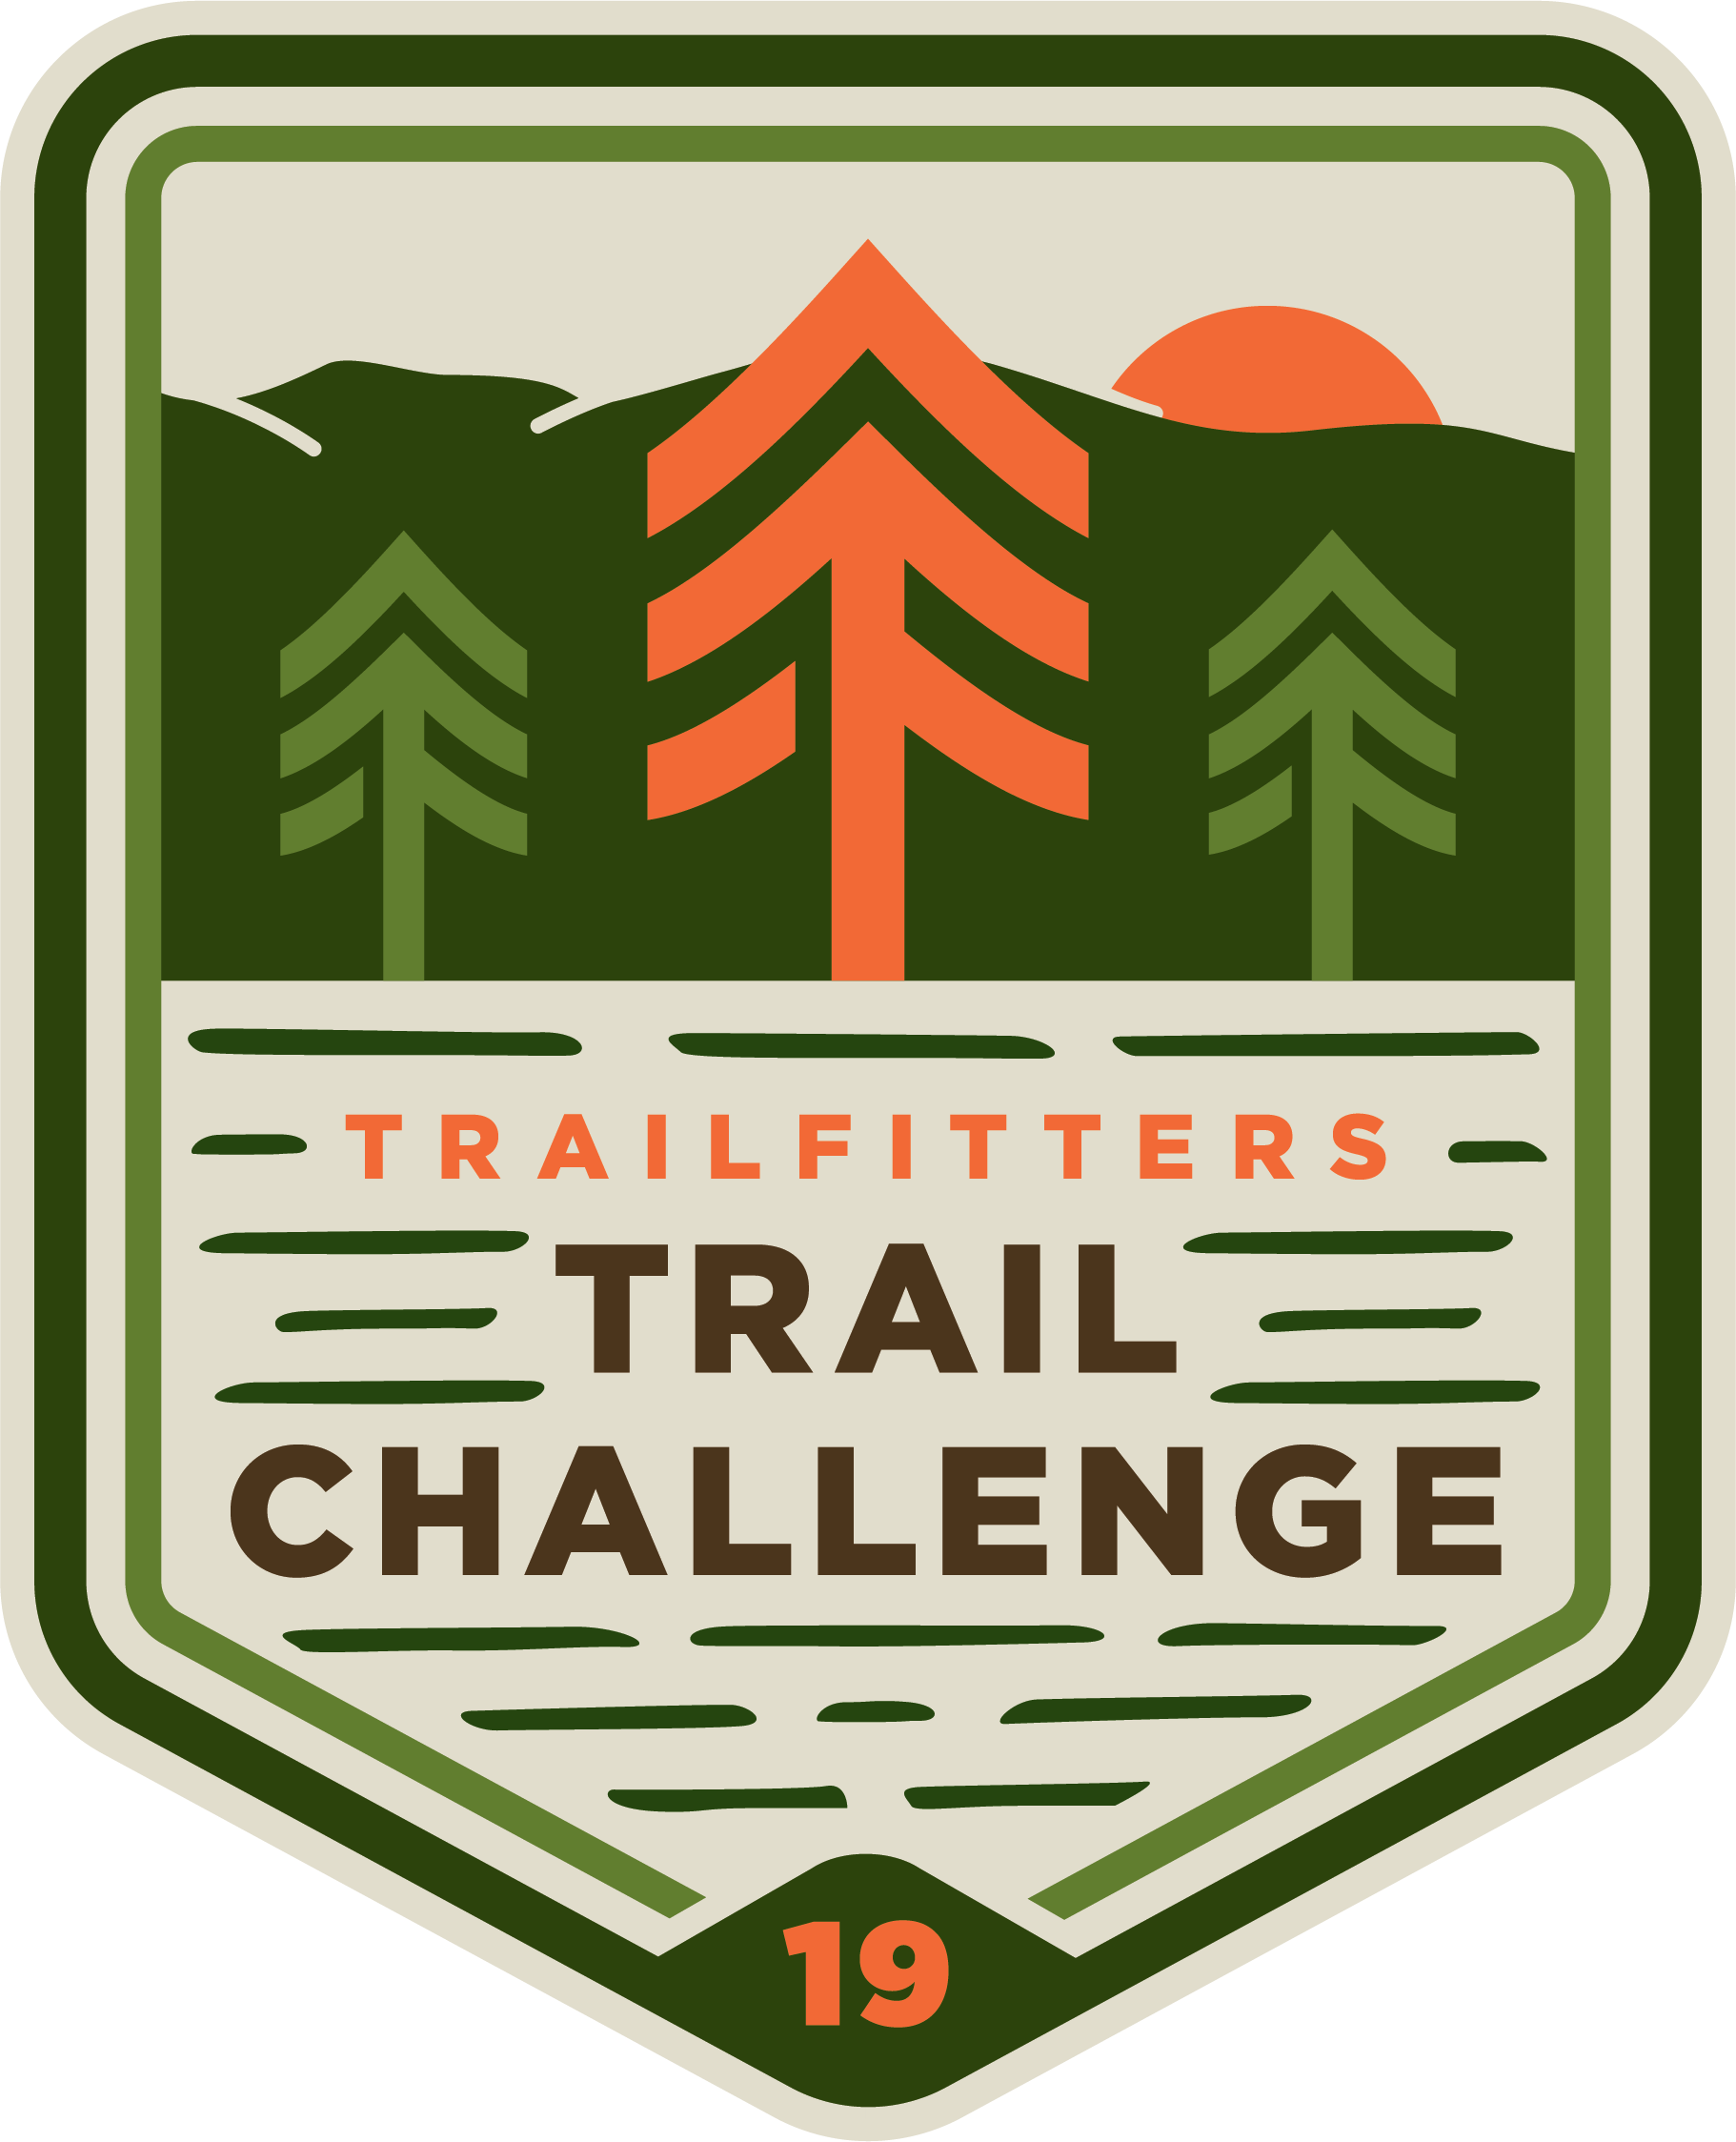 Trail Challenge Patch with green background and orange tree